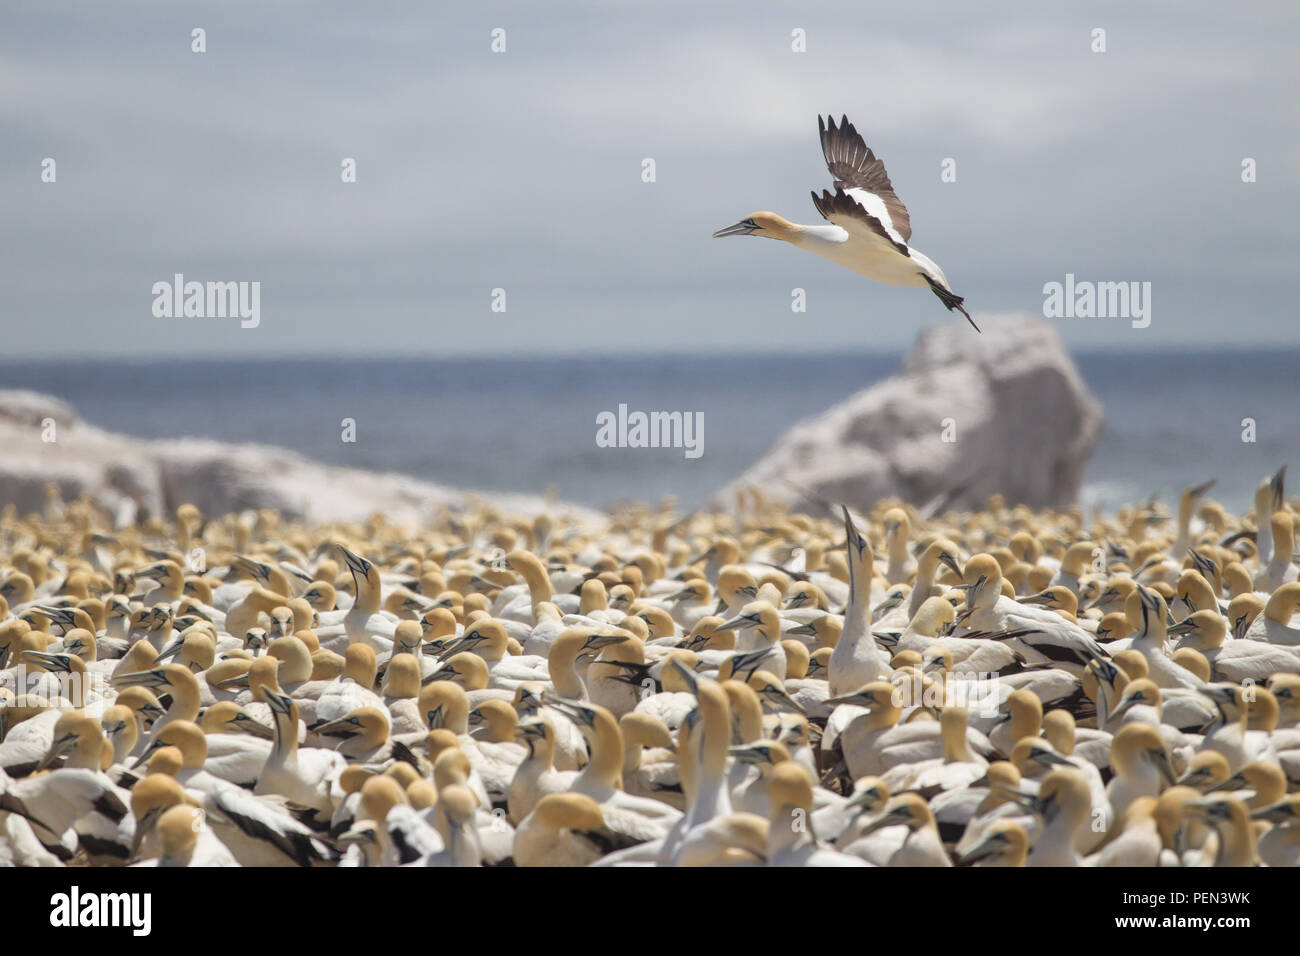 Bird Island Nature Reserve in Lambert's Bay, Western Cape Province, South Africa, is an important breeding site for seabirds, especially Cape gannets. - Stock Image